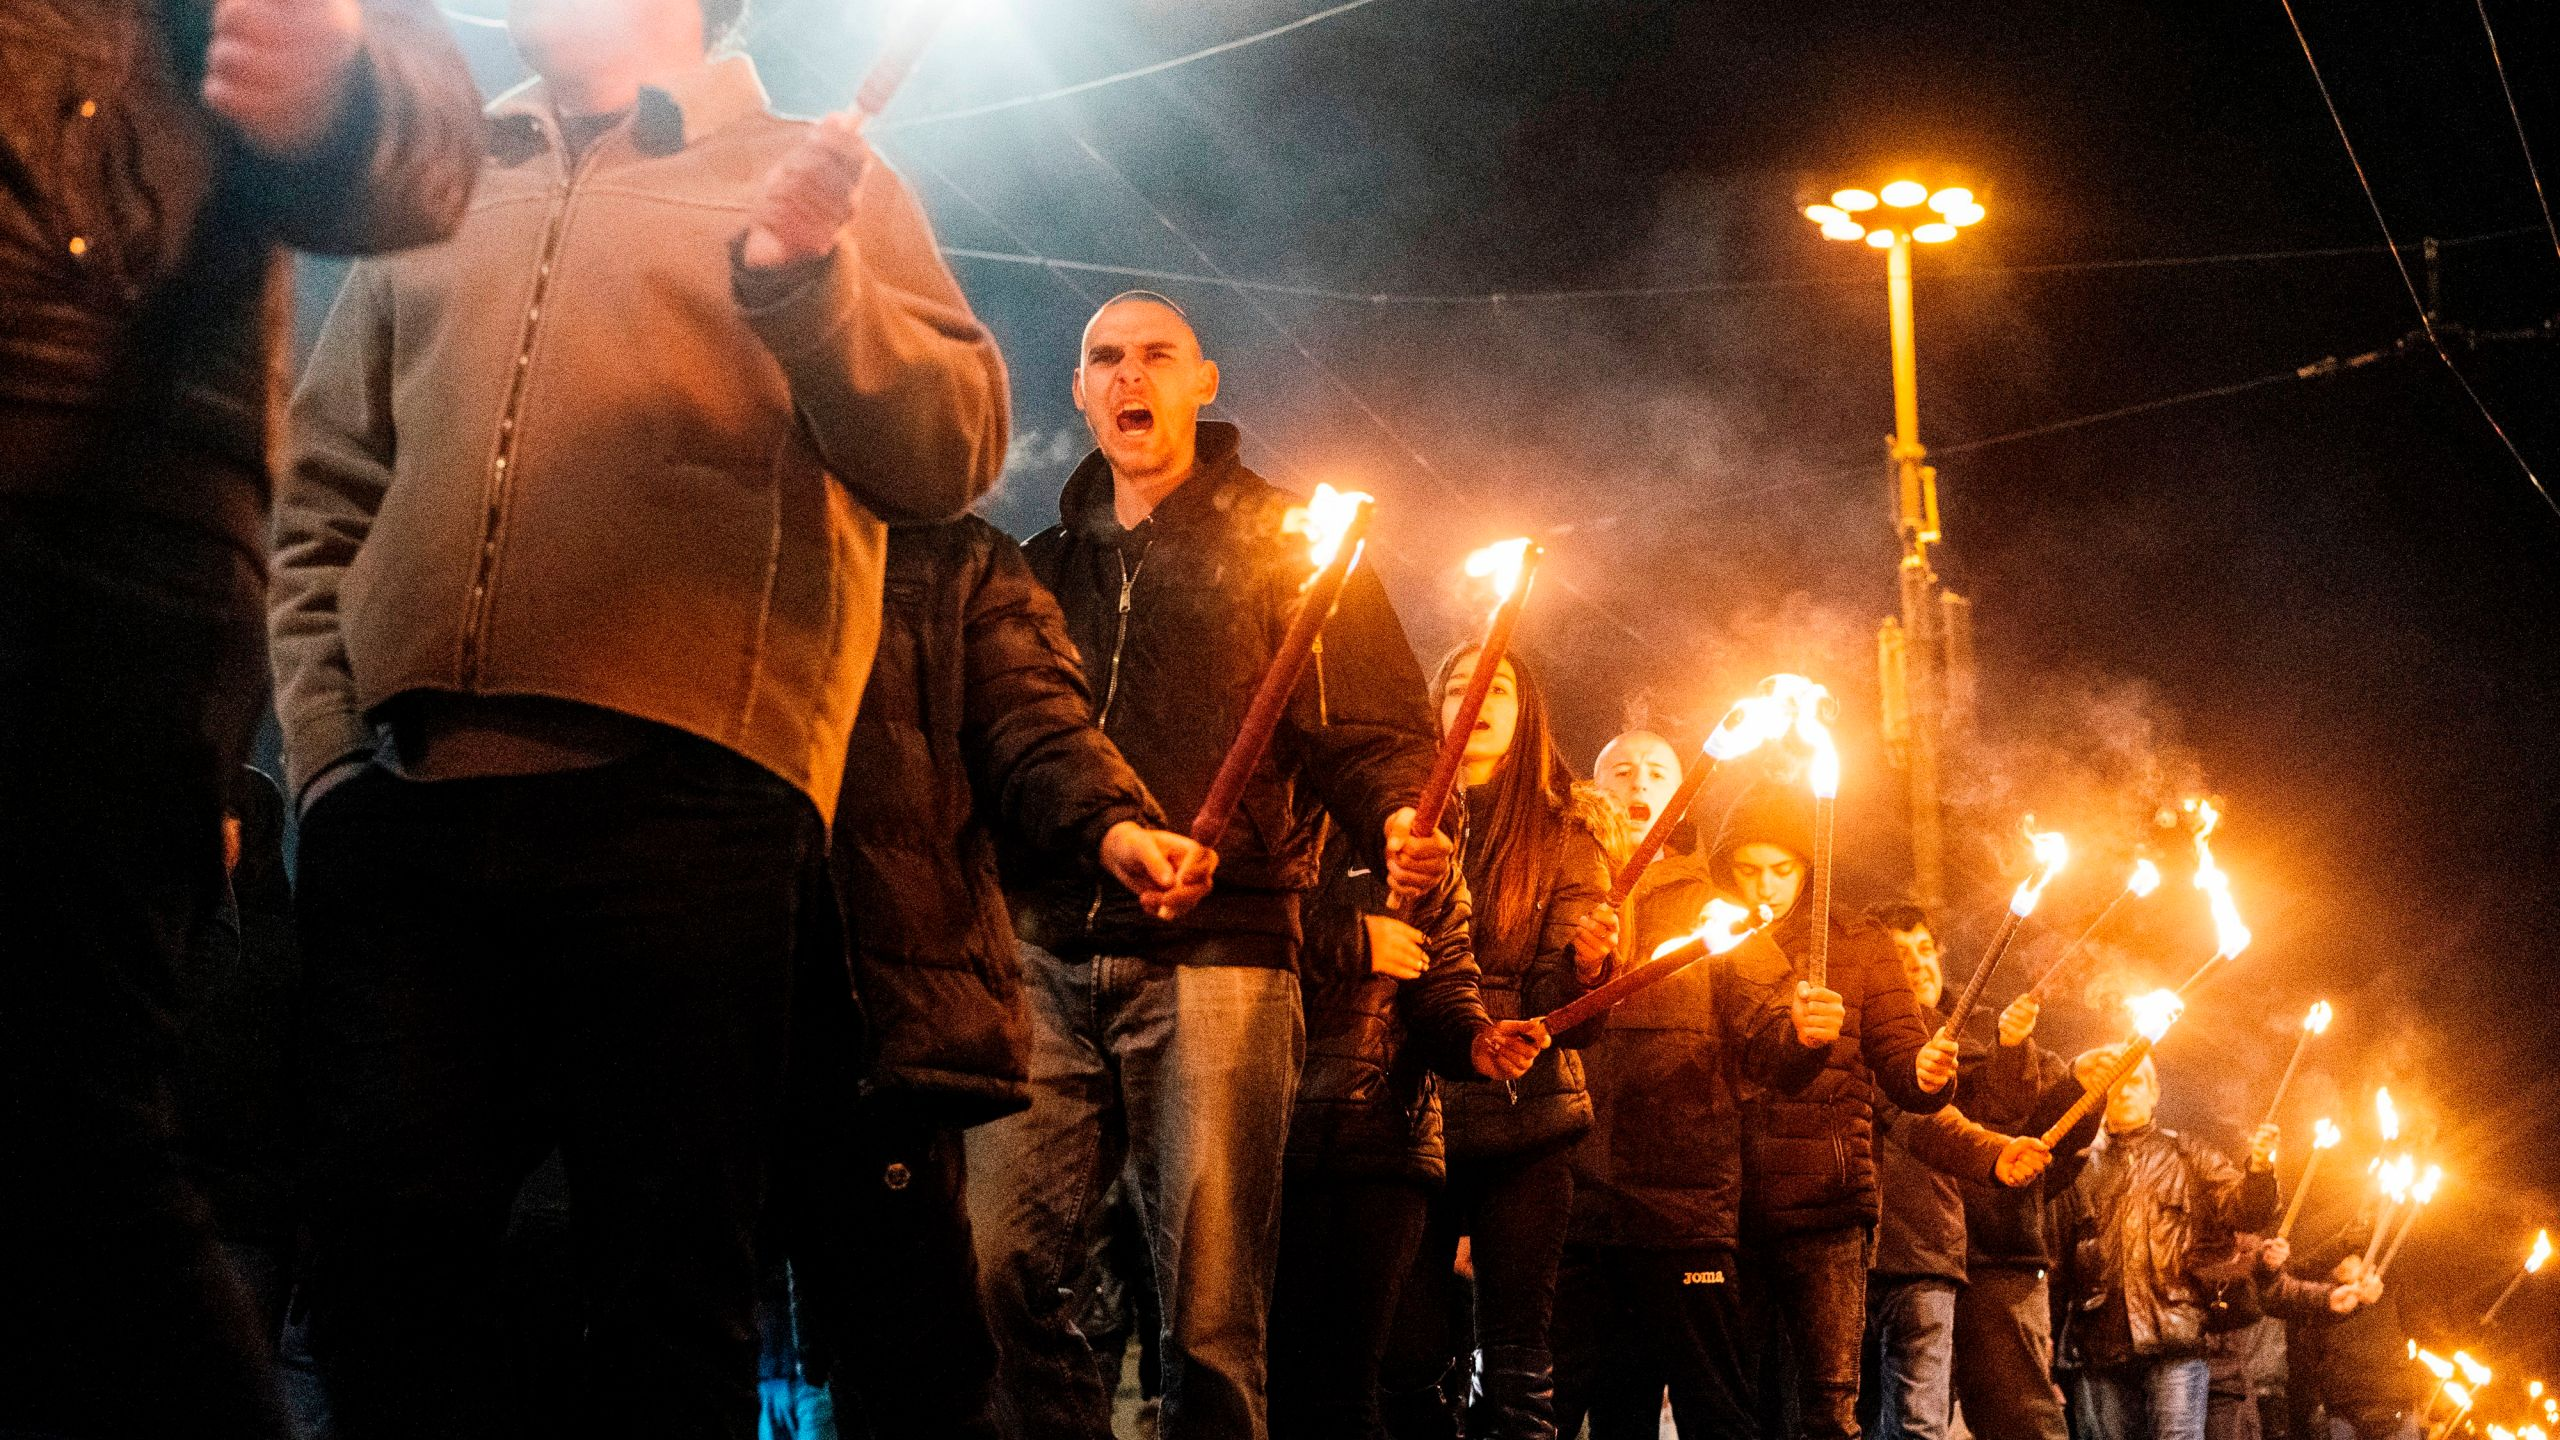 Members of nationalist organizations parade with torches during a march to commemorate Bulgarian General and politician Hristo Lukov, in the centre of Sofia on February 16, 2019. (Credit: DIMITAR DILKOFF/AFP/Getty Images)